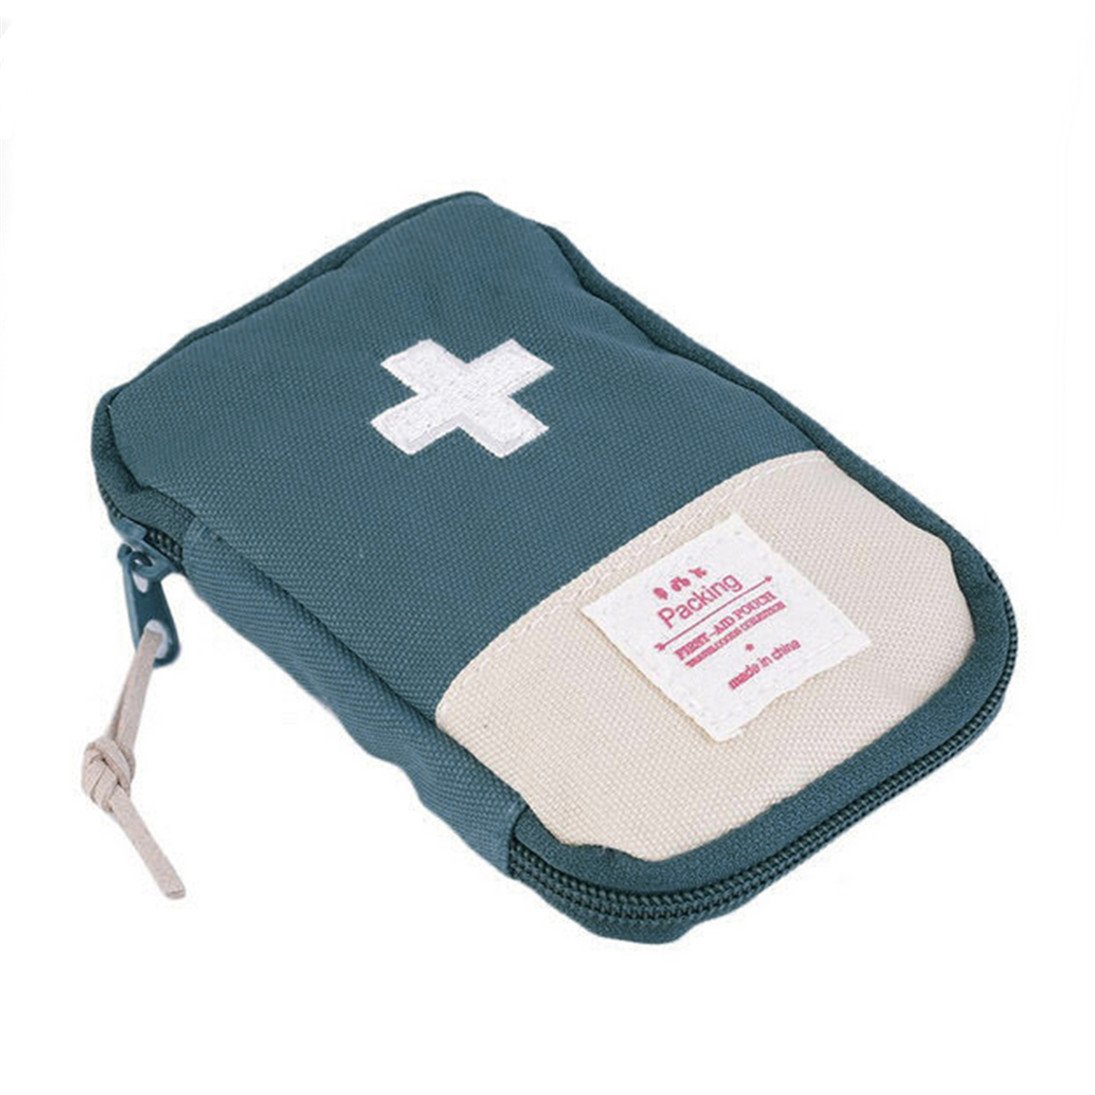 Finance Plan Mini Outdoor Camping Travel Response Case Portable First Aid Kit Bag Pill Pouch (Green)